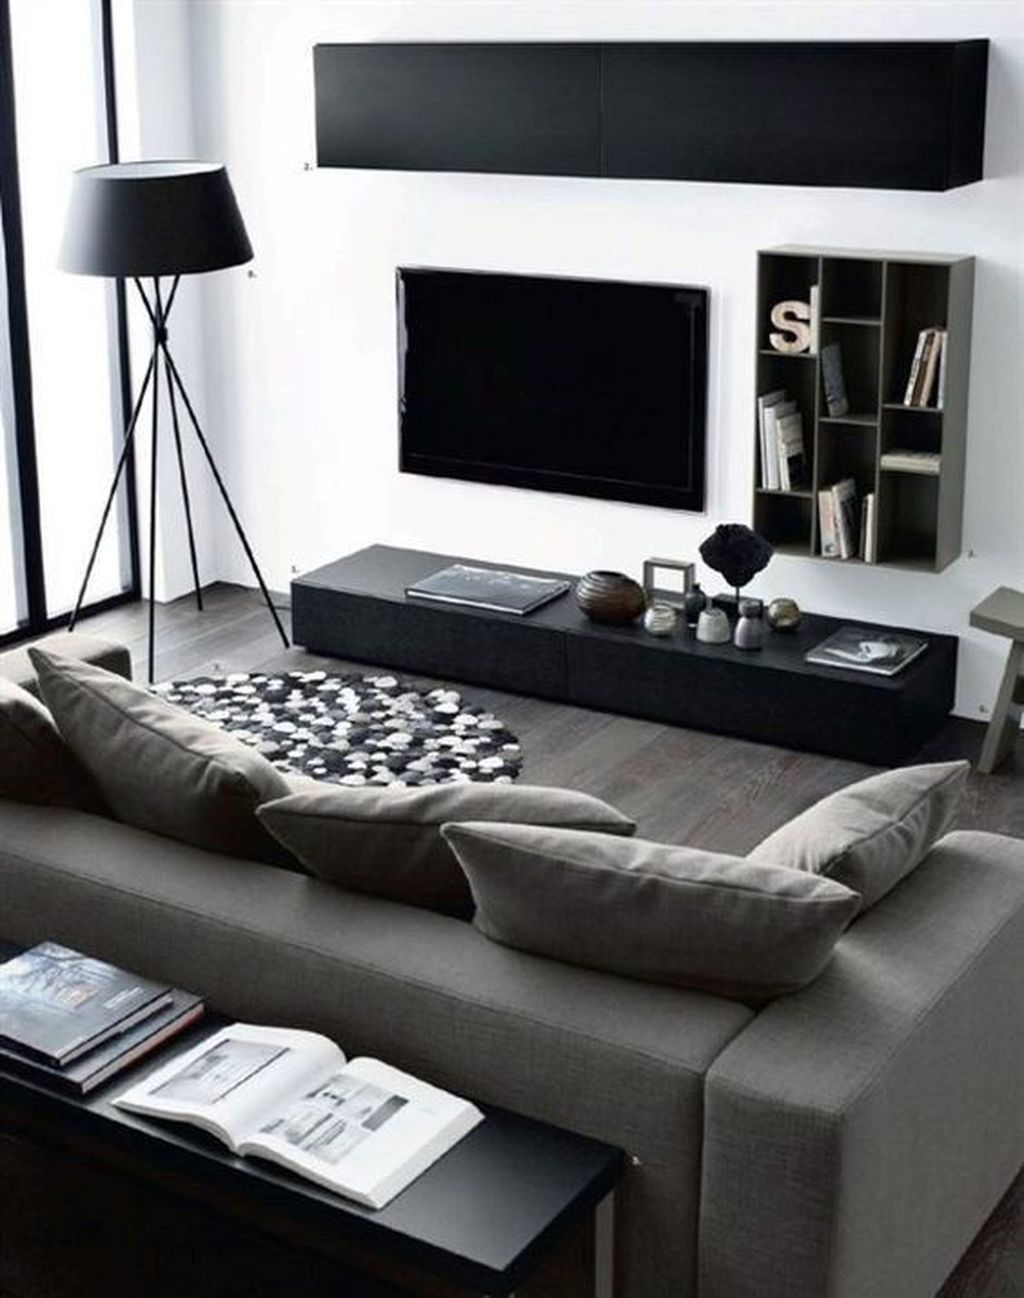 Marvelous Interior Design Ideas For Home That Looks Cool 12